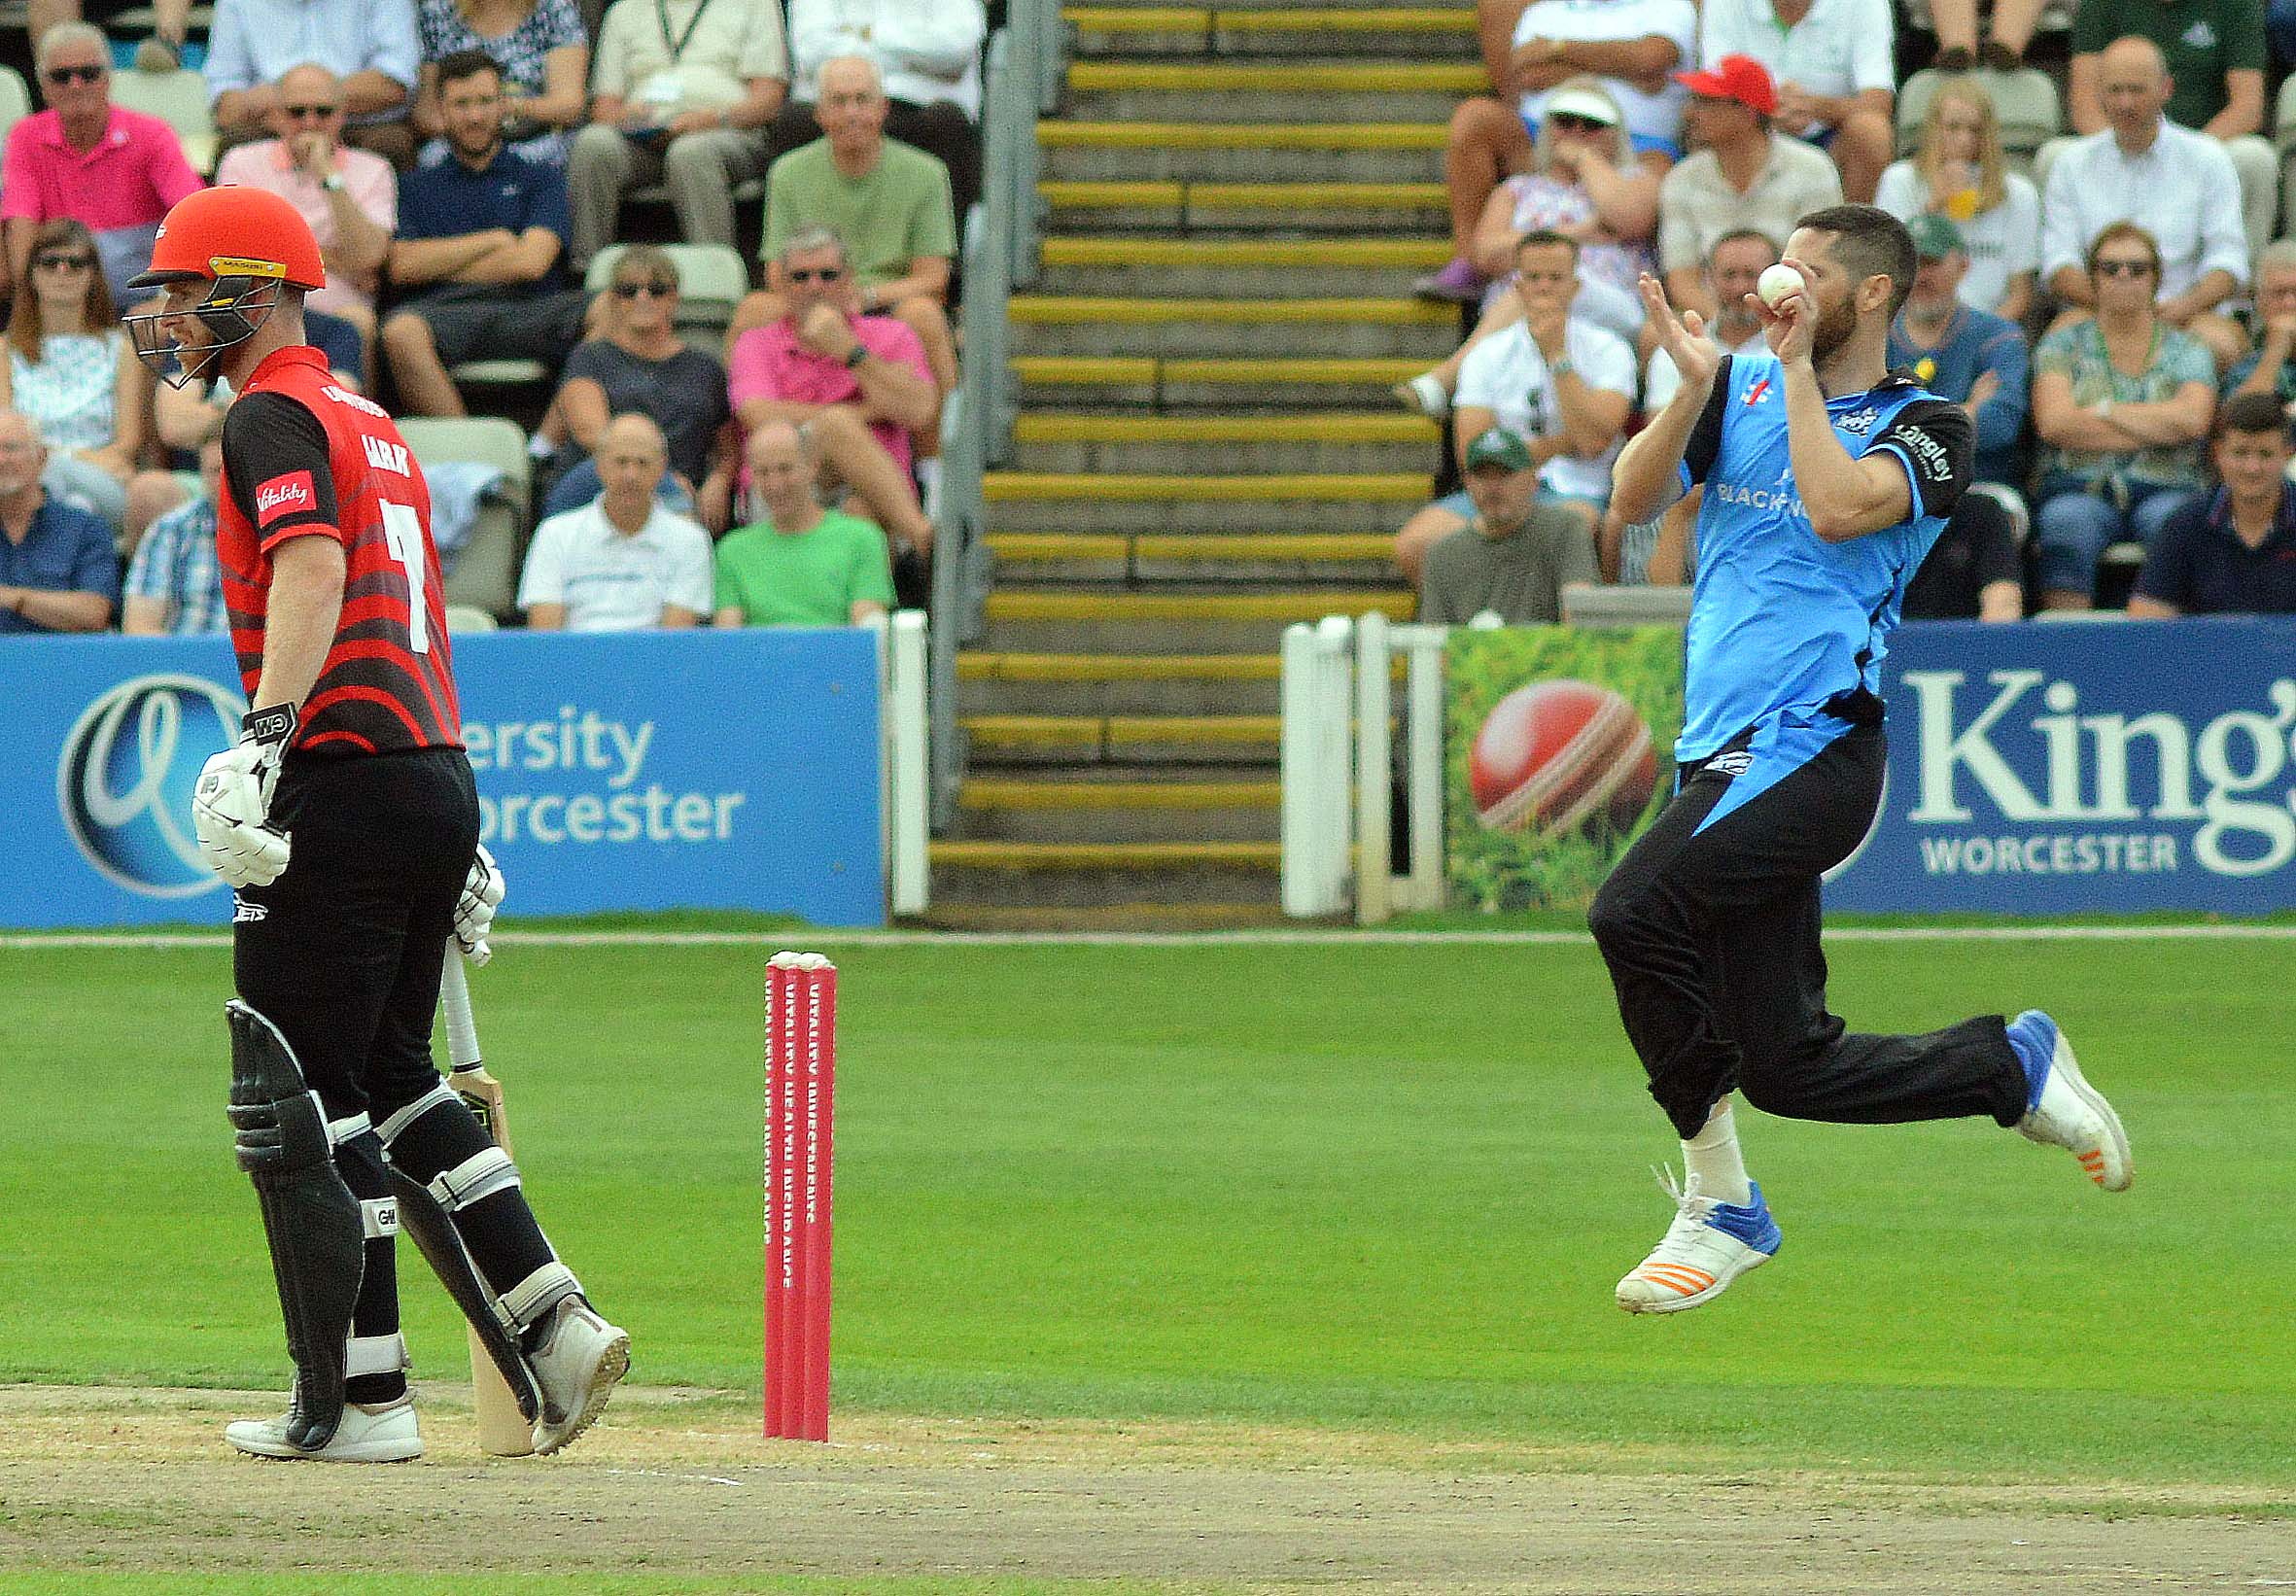 Wayne Parnell in action for Worcestershire